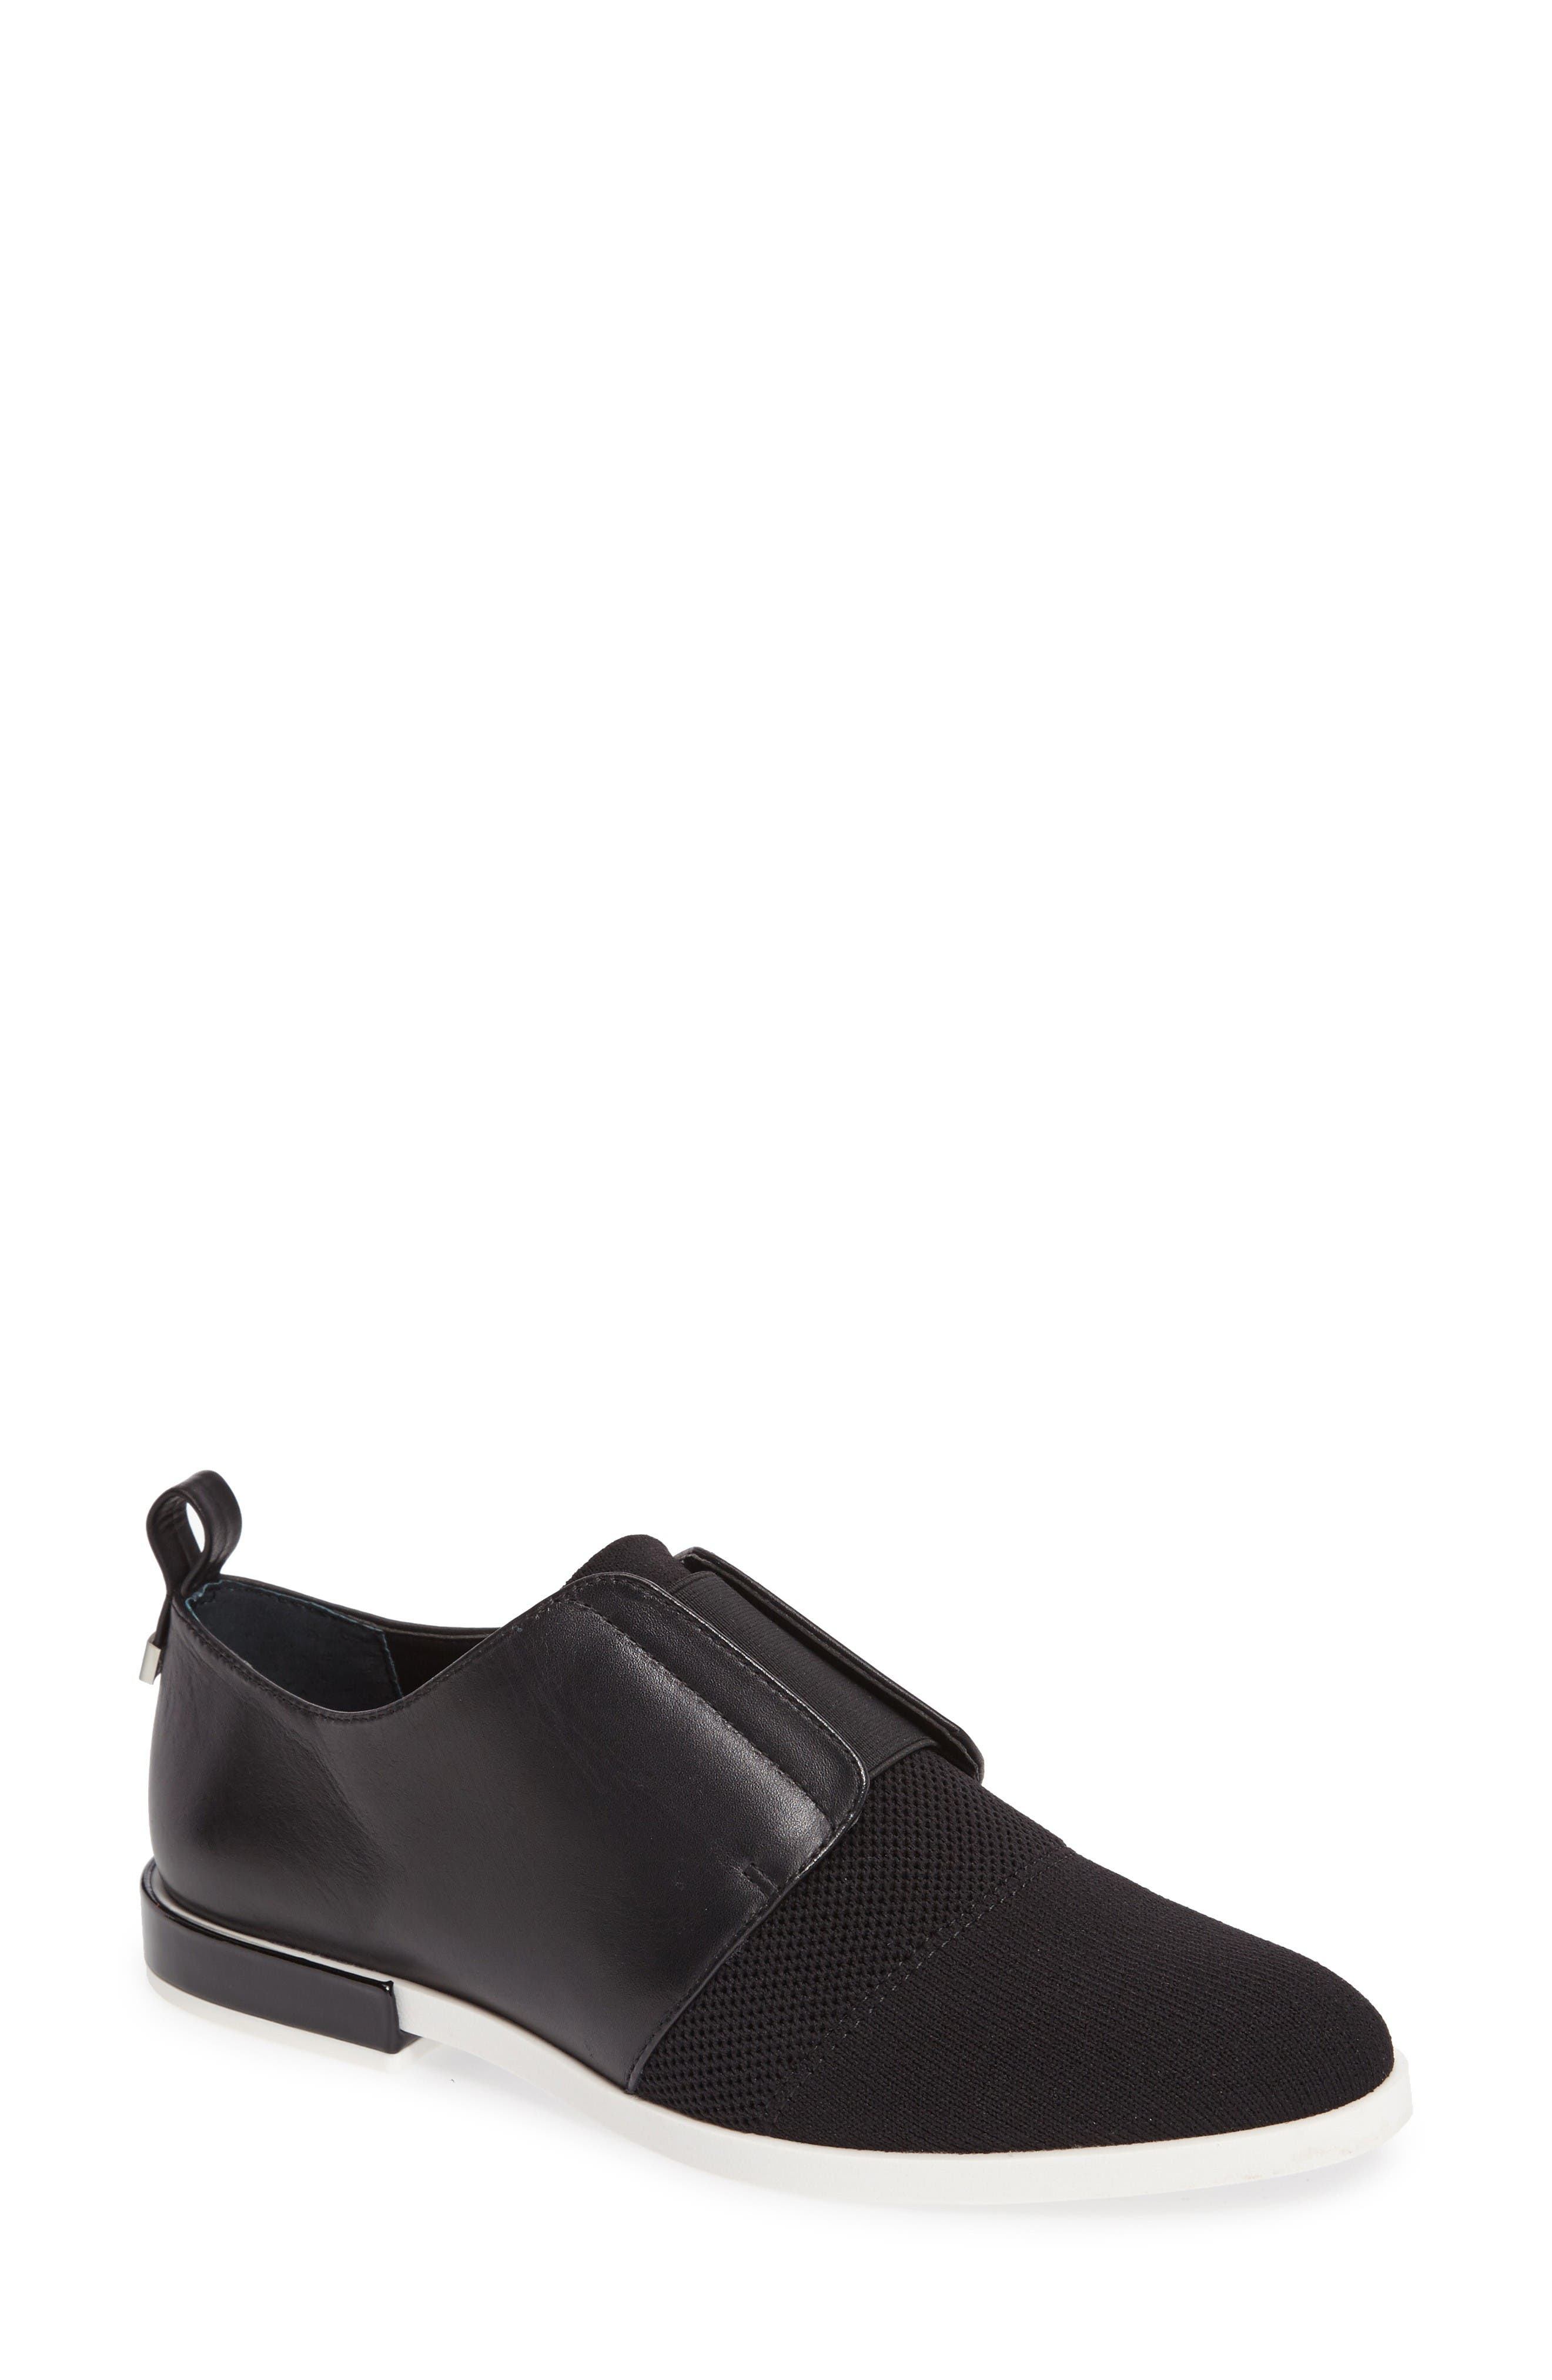 Calvin Klein Pixie Laceless Oxford (Women)